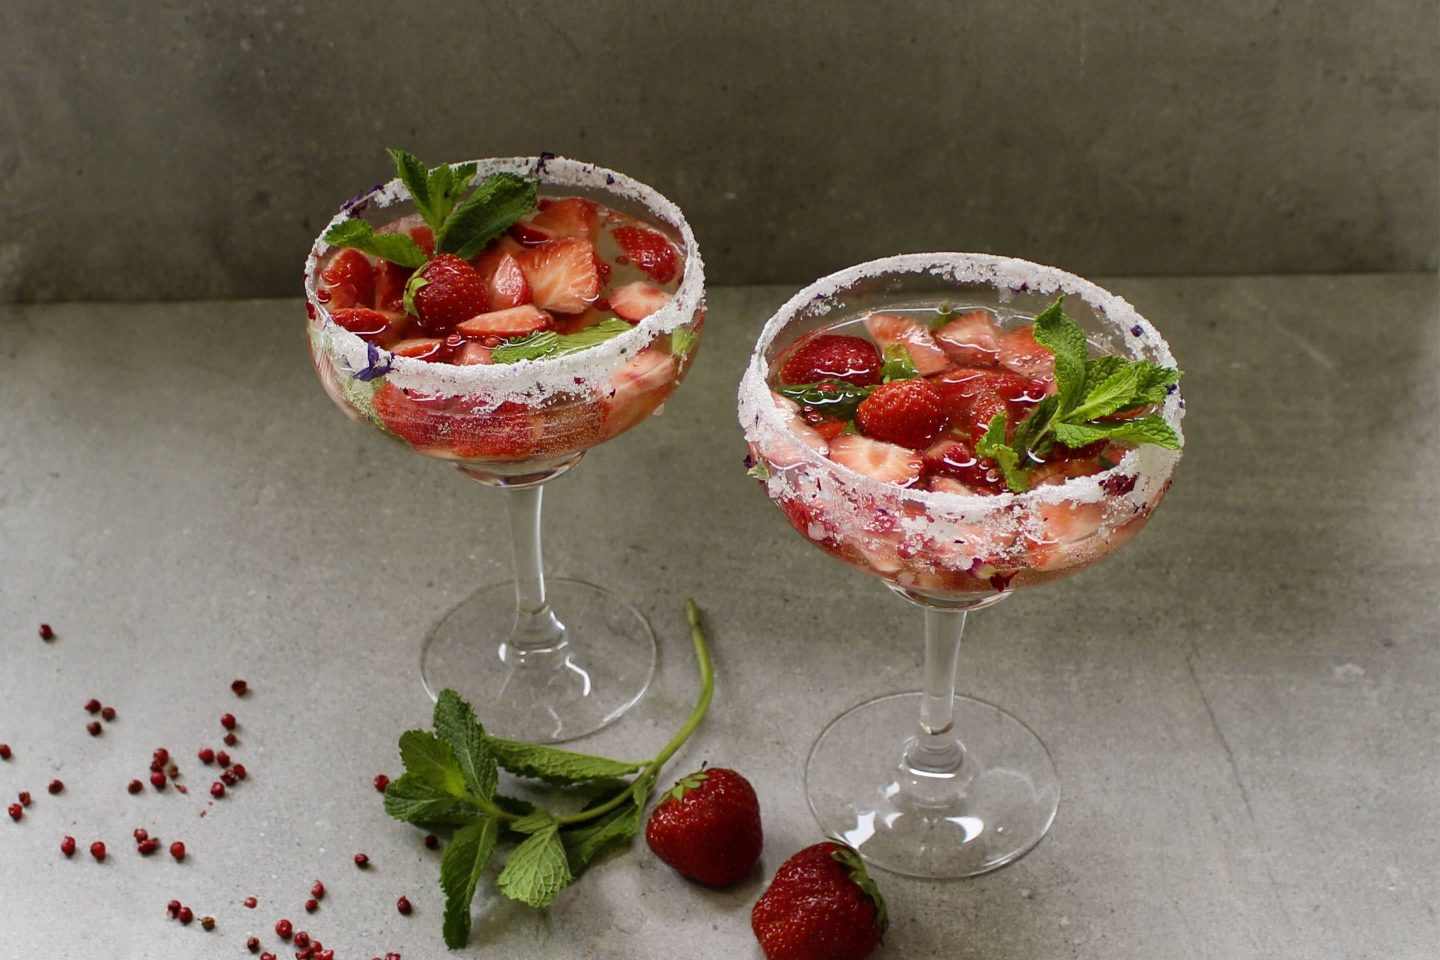 Summer punch with pink berries and fresh strawberry pieces in sugar-coated cocktail glasses, garnished with fresh mint